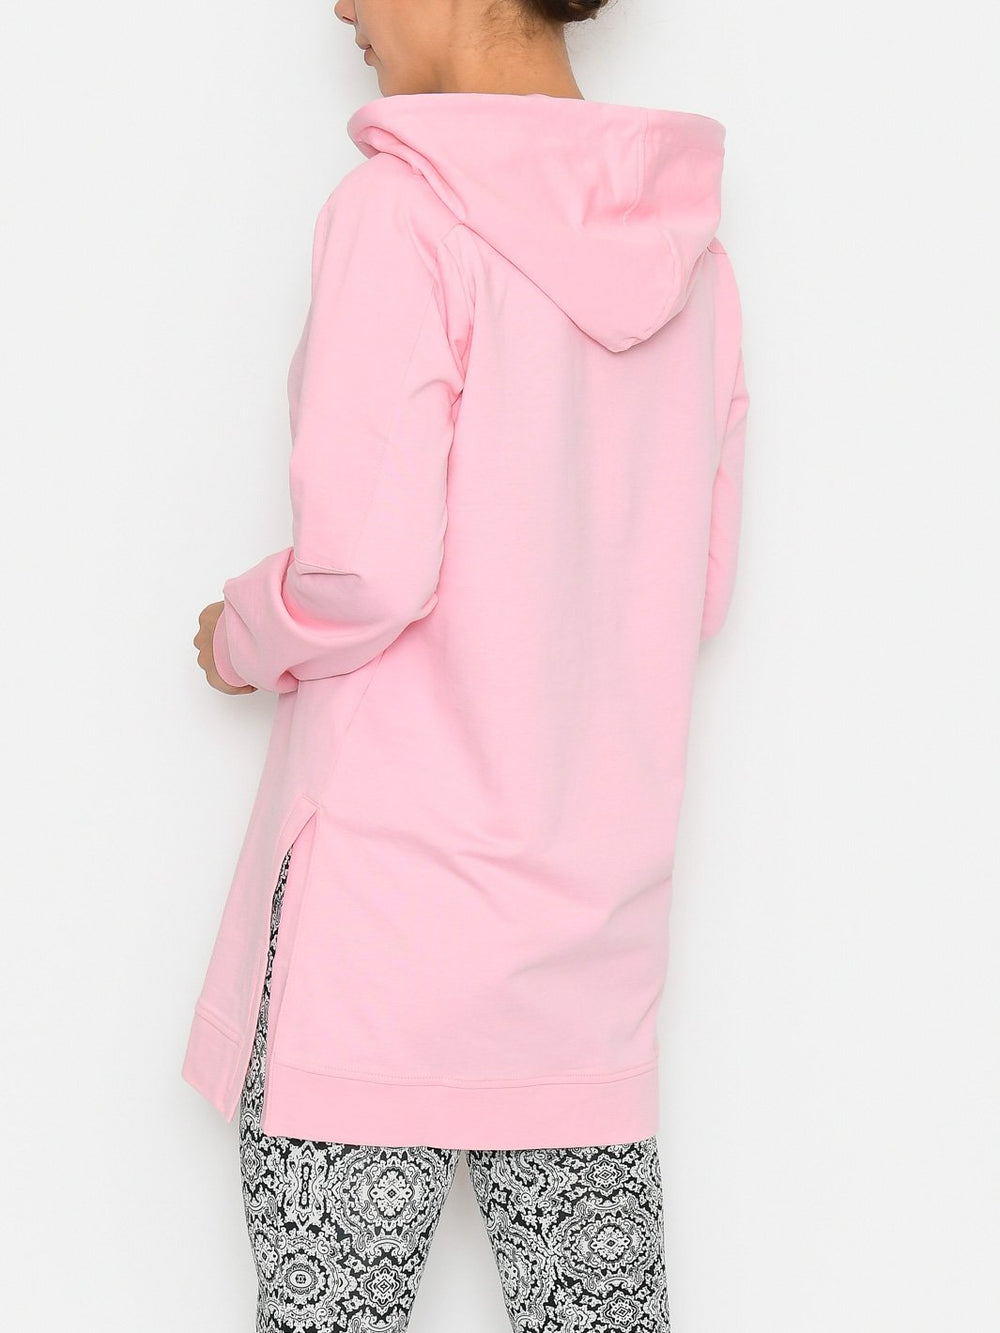 Kaffe KAlano sweat tunic candy pink - Online-Mode